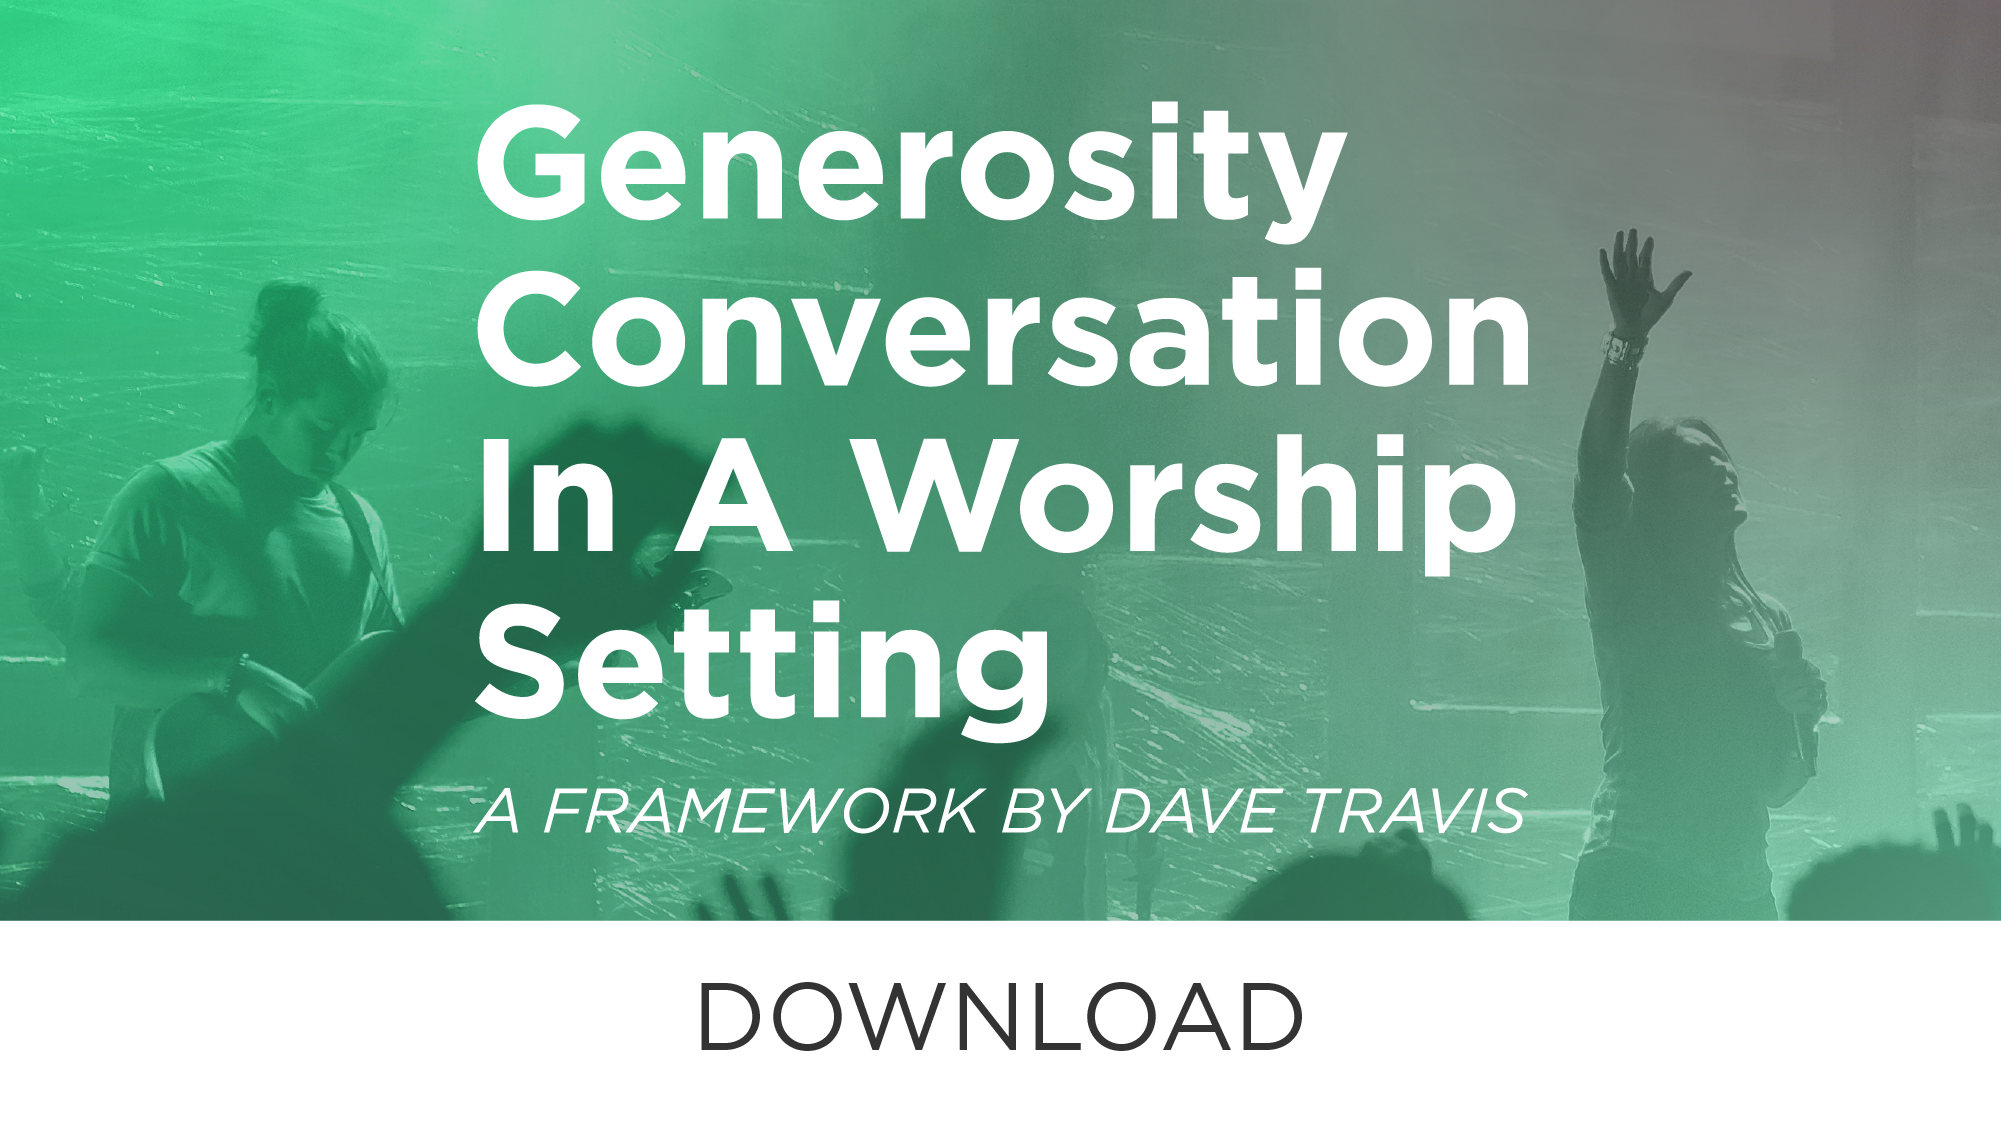 How much should you speak of generosity issues in a worship setting?